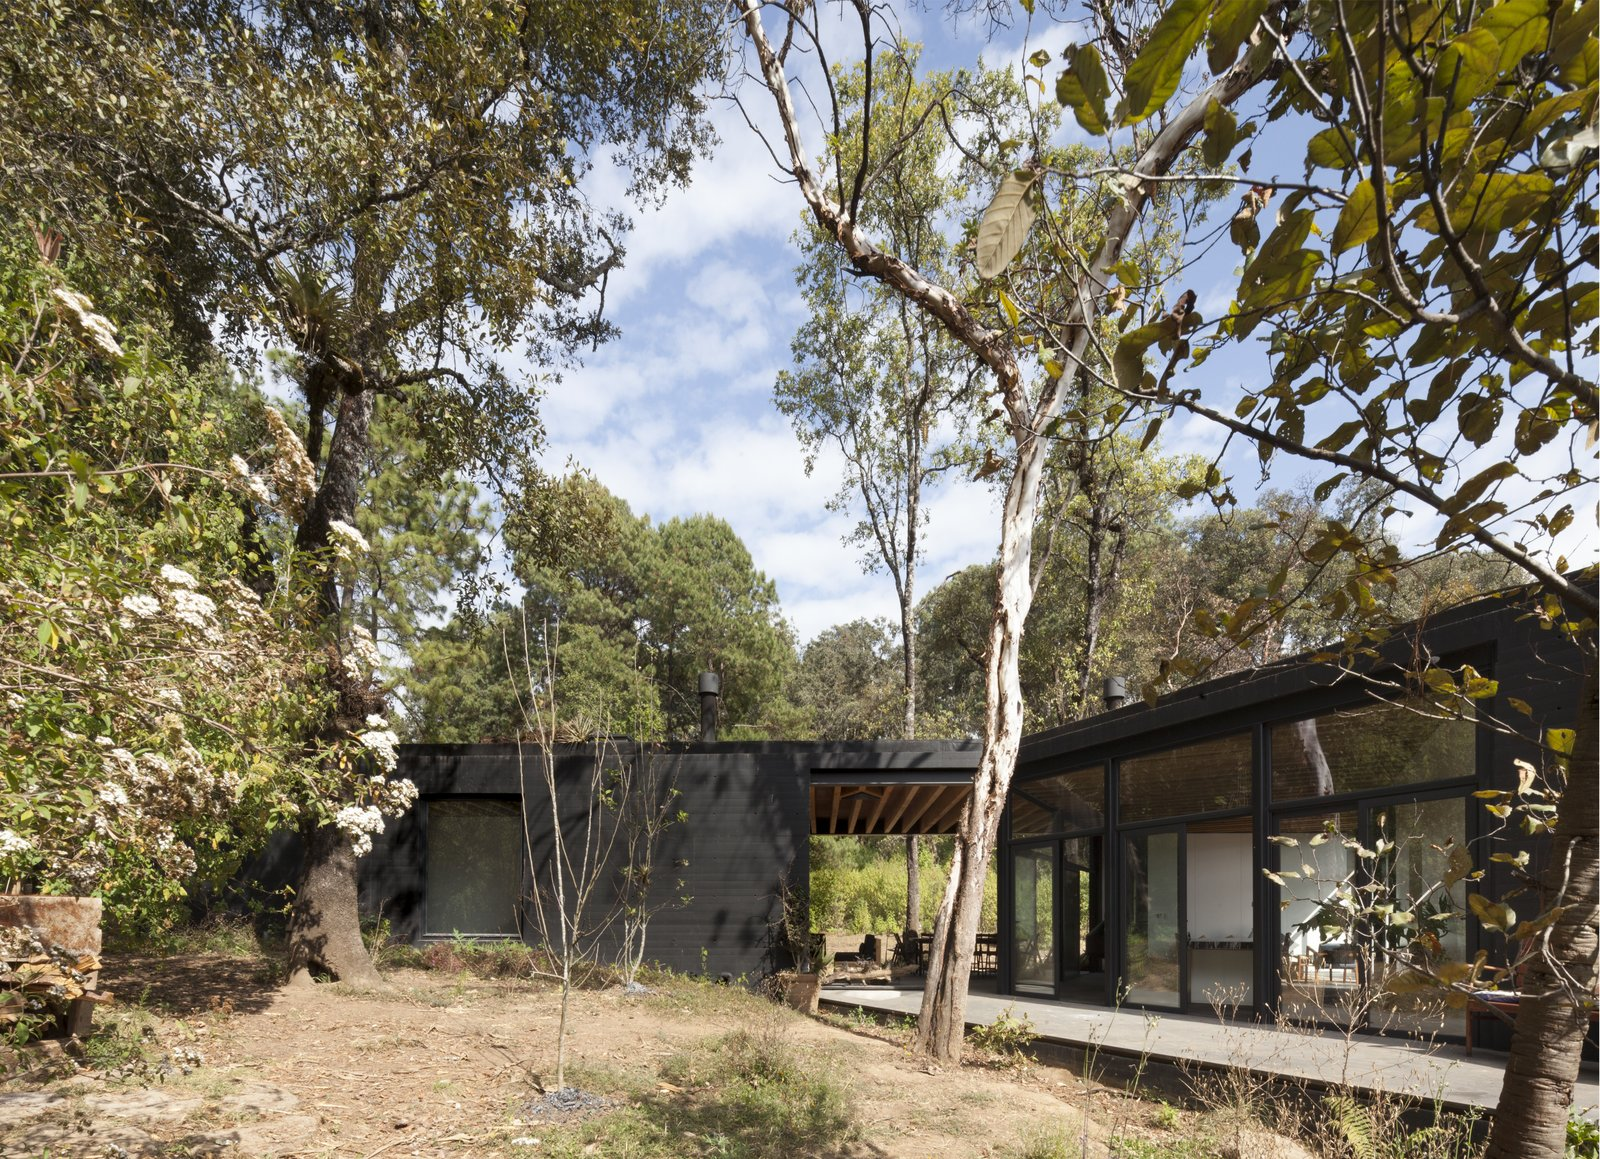 Exterior, Concrete Siding Material, House Building Type, Flat RoofLine, and Green Roof Material Glazed walls allow the interior living areas to be seamlessly connected to the outdoors.  Best Photos from Upcycled Trees Cloak This Modern Mexican Home